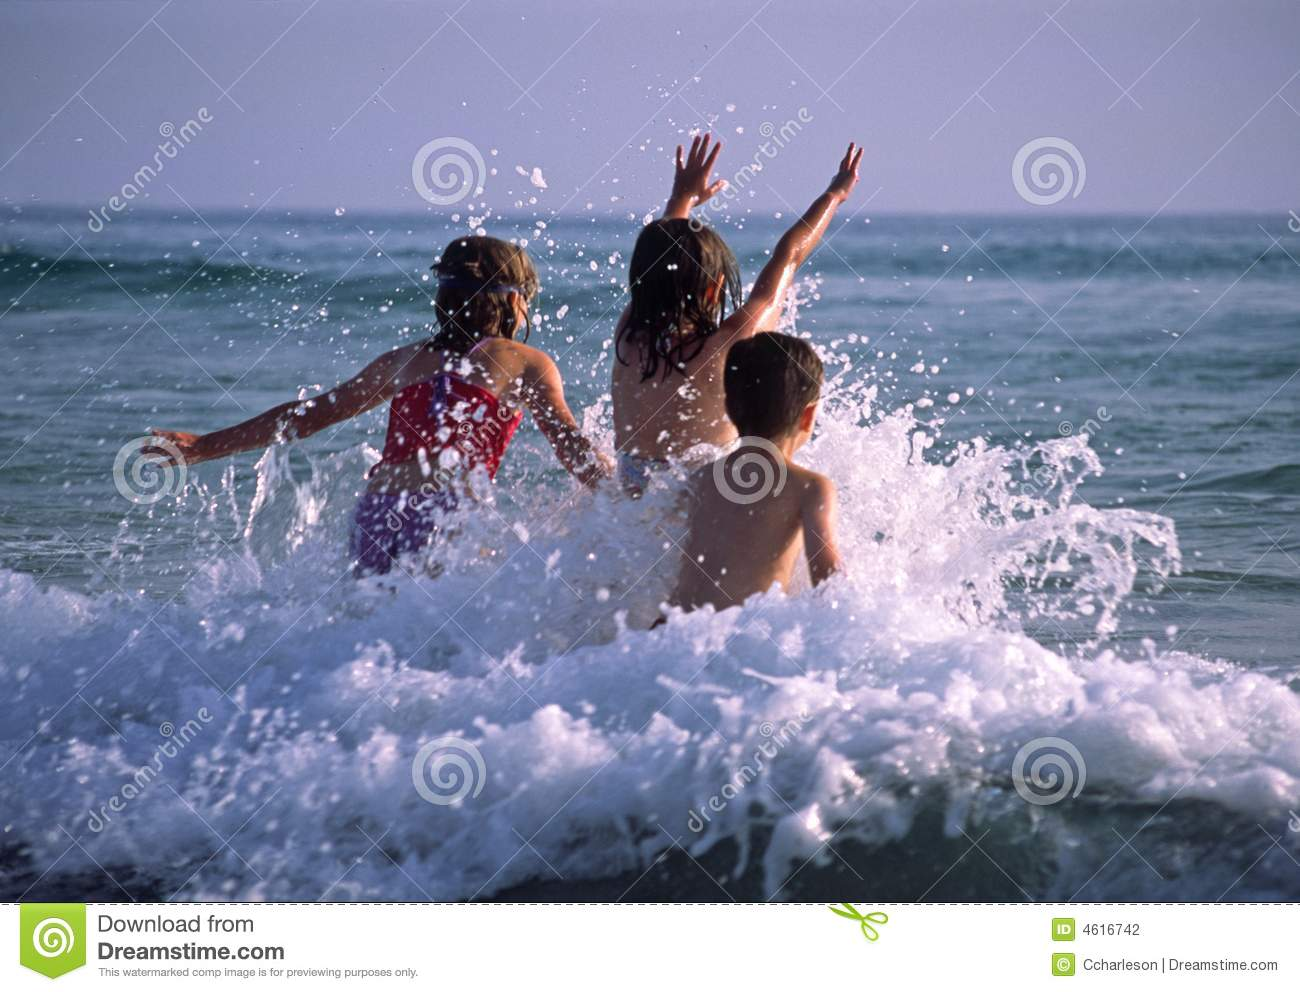 Children playing in the waves